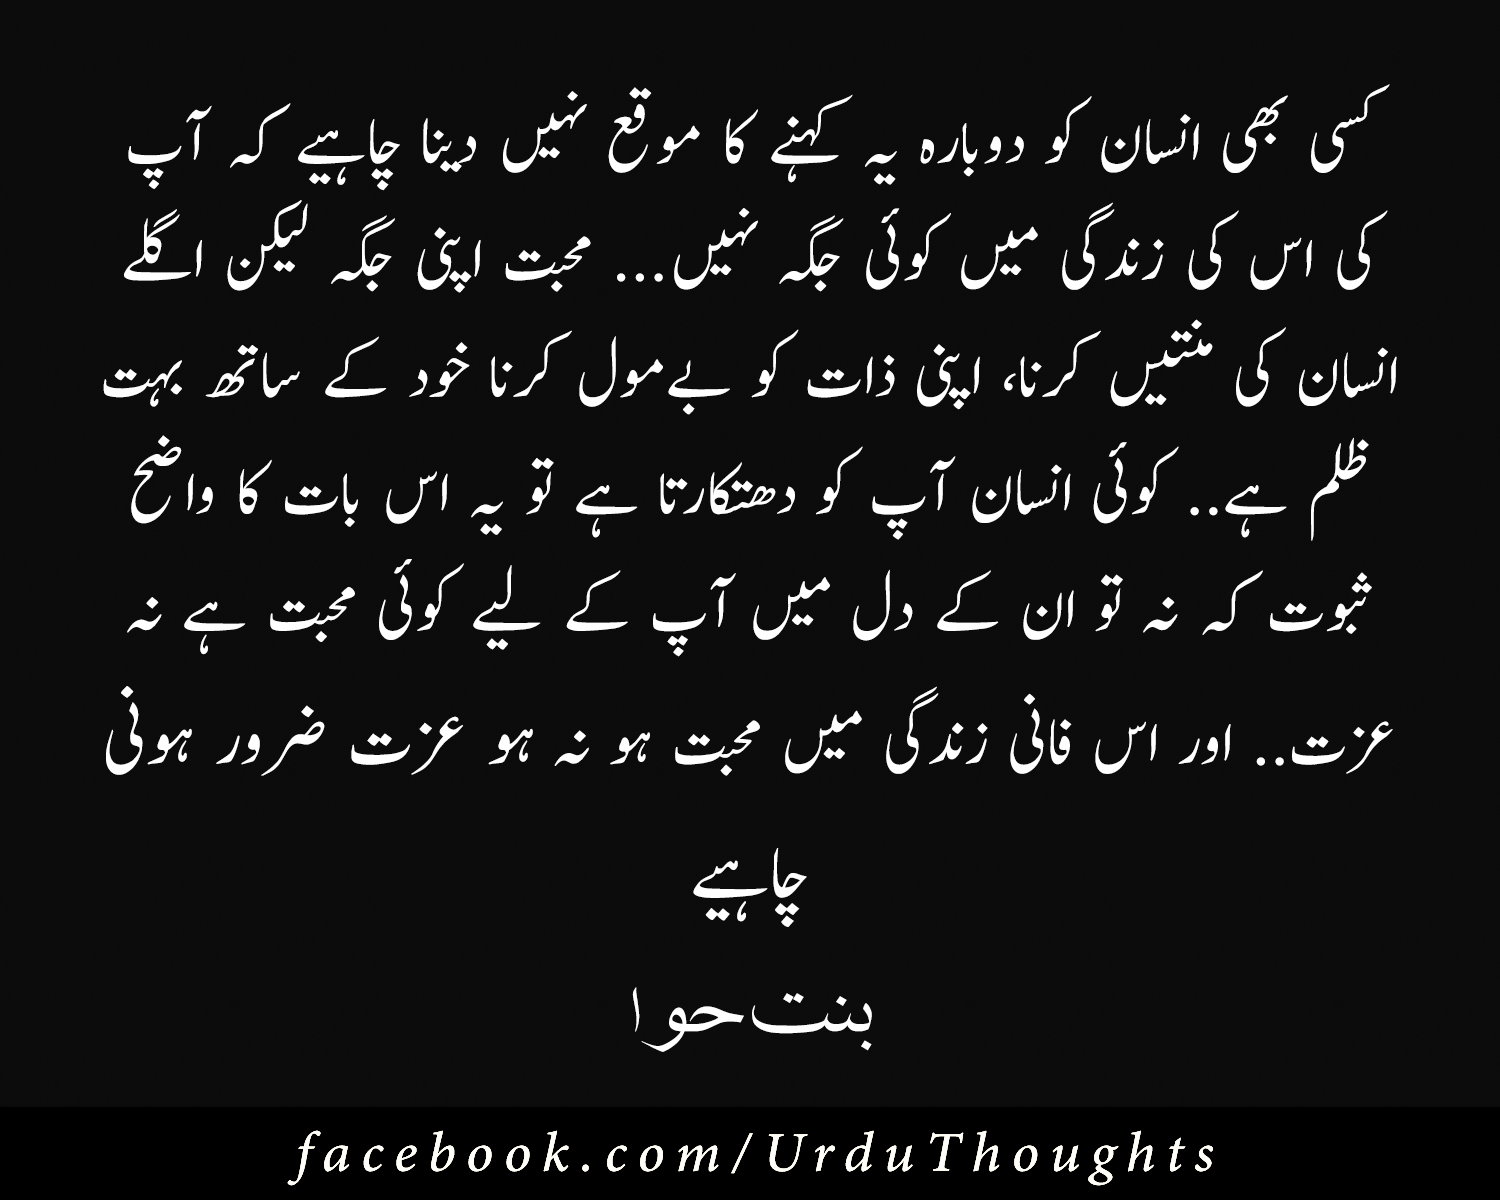 Quotes In Urdu Unique Best Awesome Beautiful Quotes In Urdu With Pictures  Urdu Thoughts